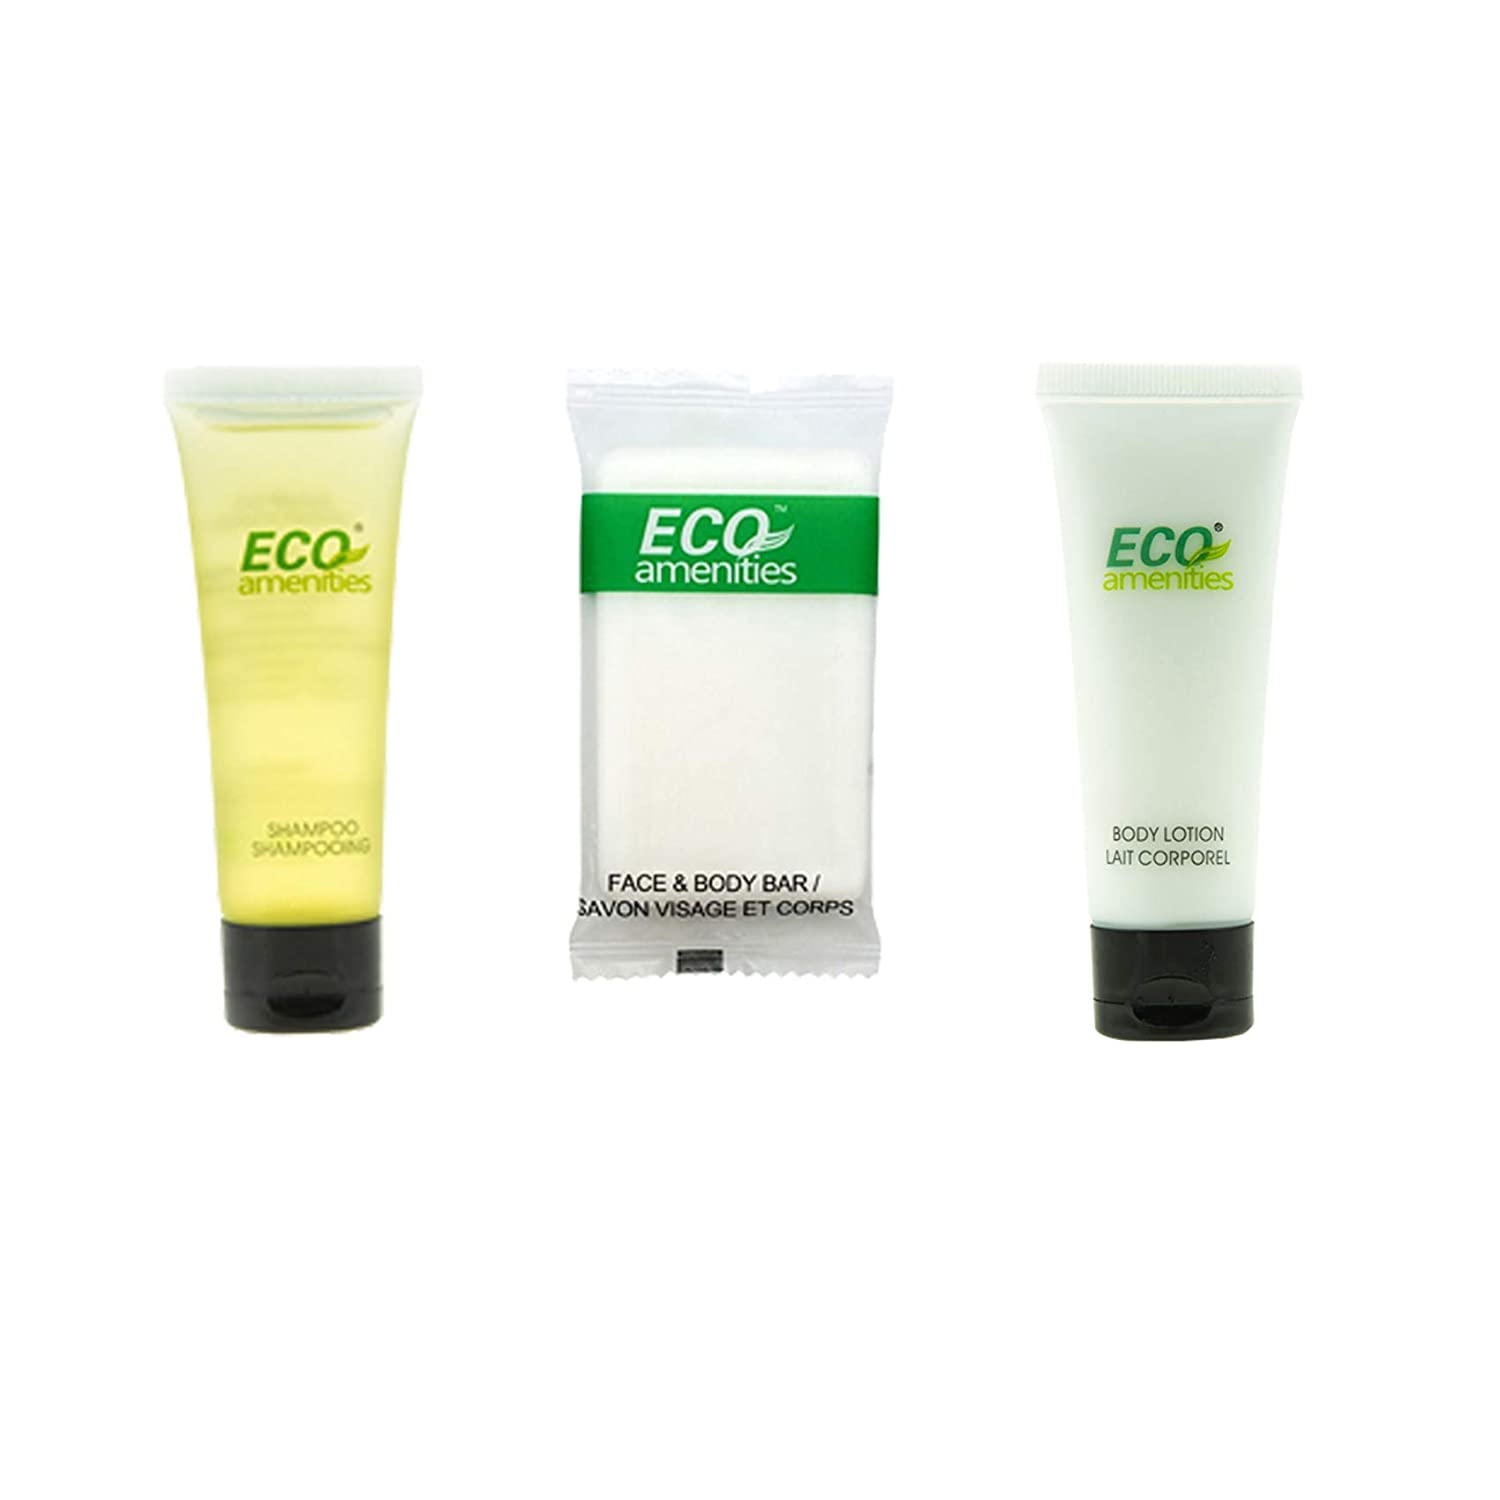 ECO amenities Shampoo and Conditioner 2 in 1, Body Lotion, Travel Sized Hotel Soap Bars 150pcs in ONE Package; Hotel Bathroom Guest Toiletries in Bulk